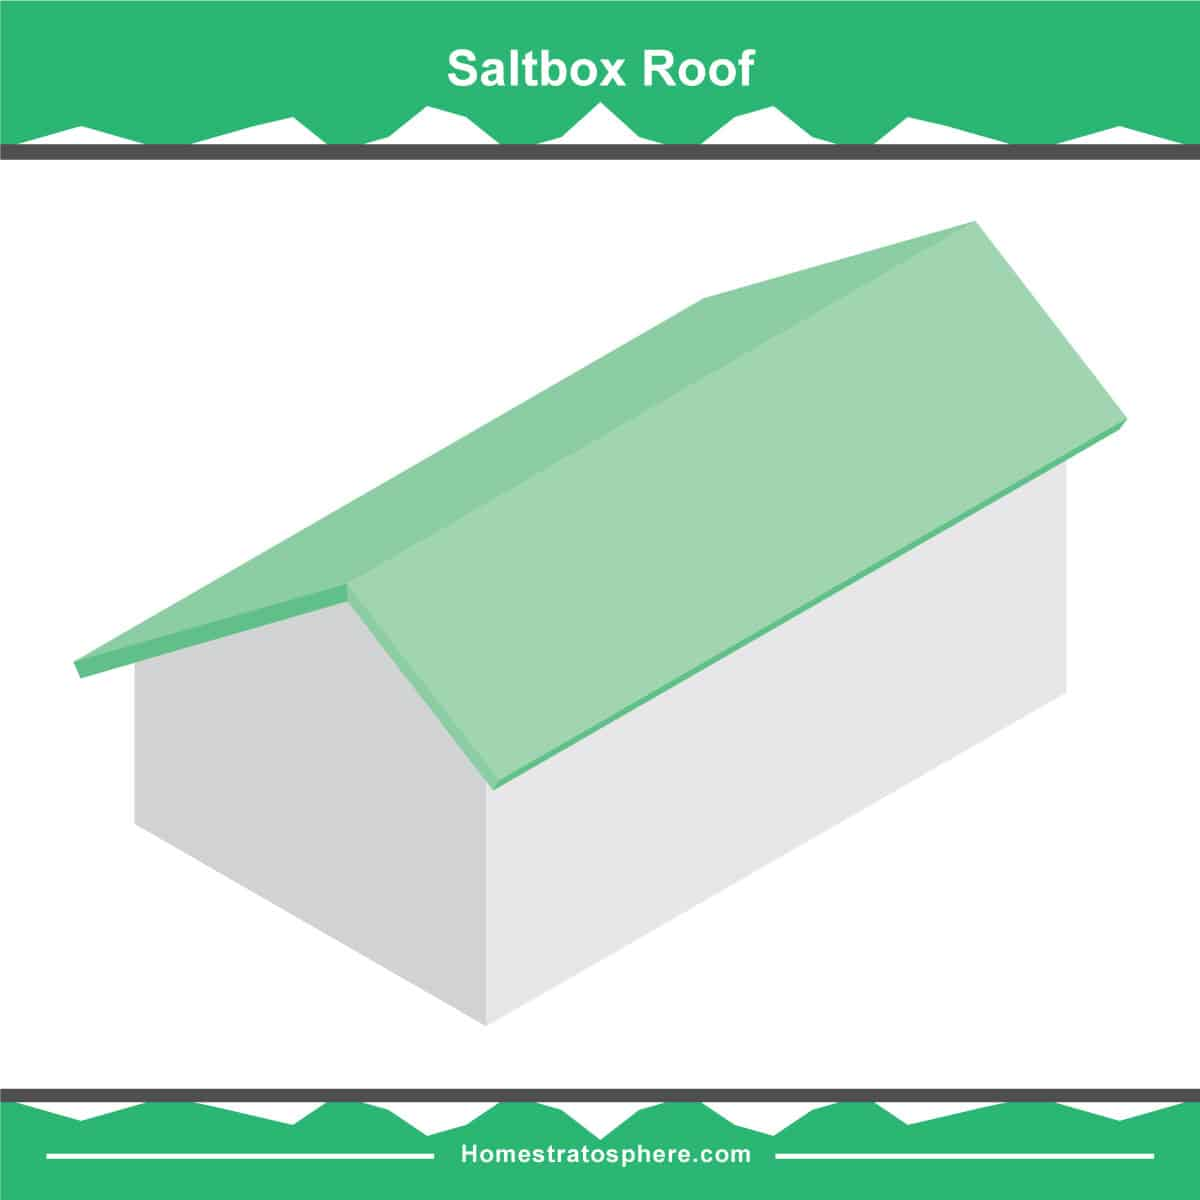 Saltbox roof diagram